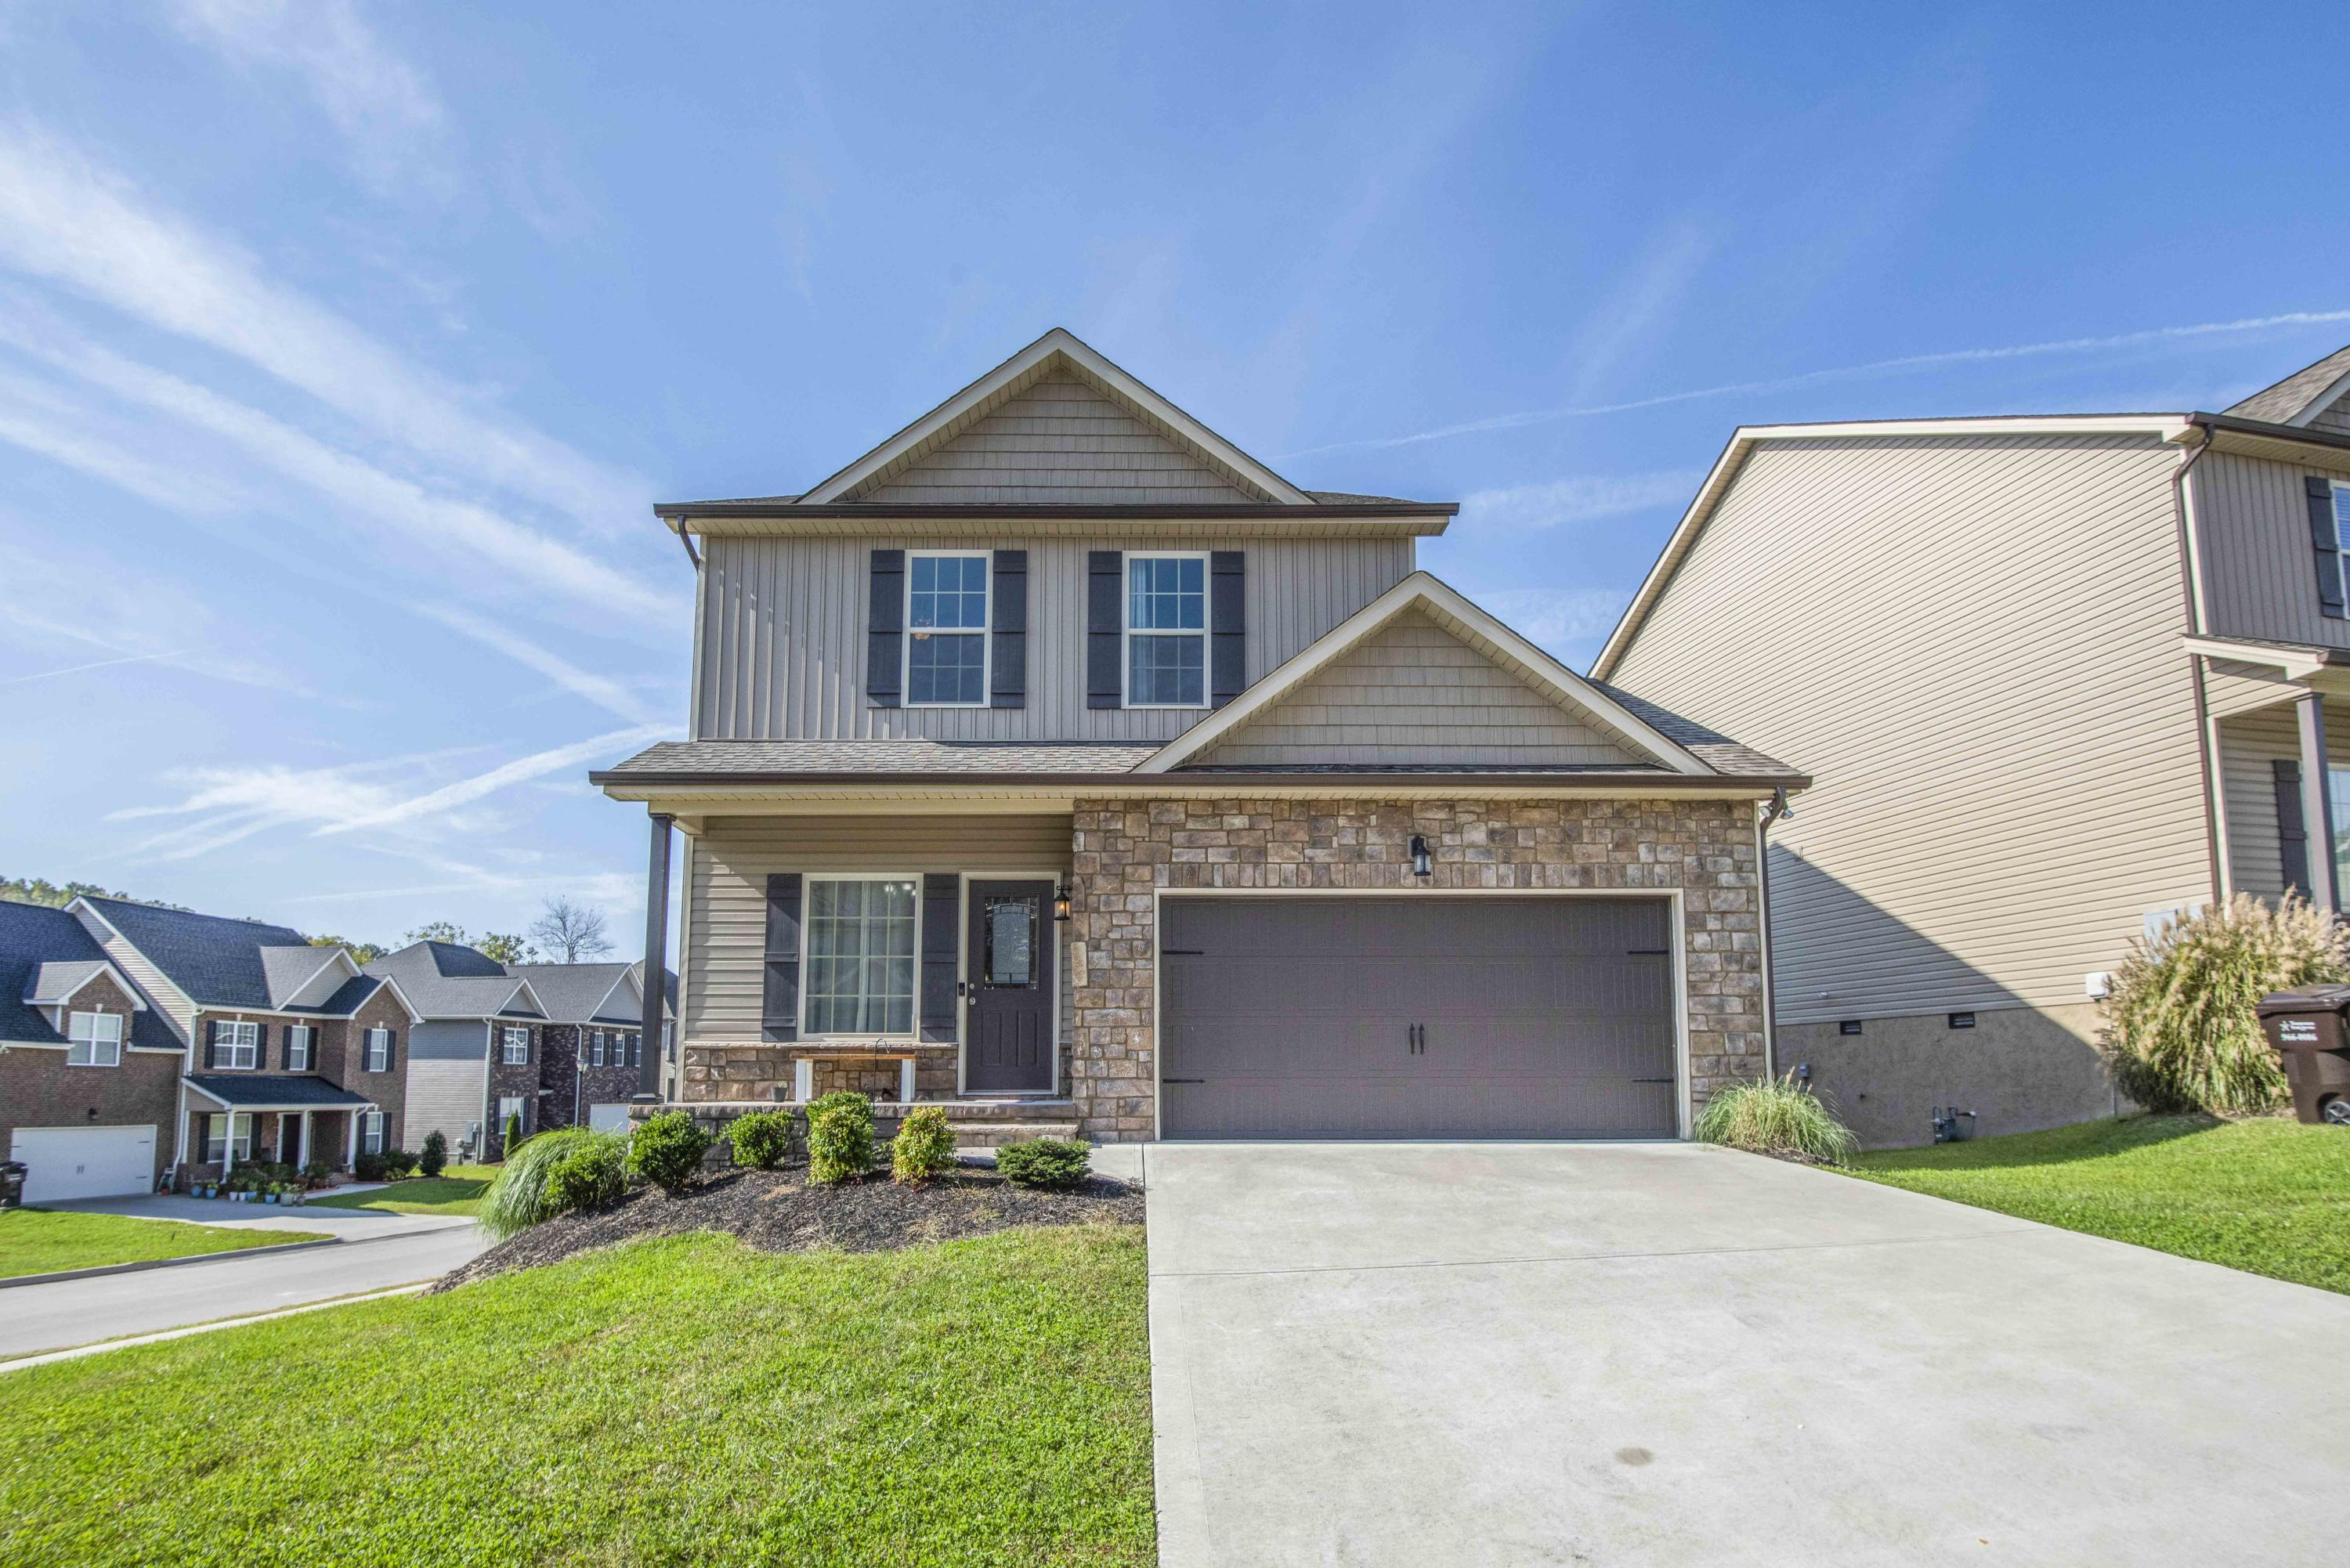 1627 Silver Spur Lane, Knoxville, Tennessee 37932, 3 Bedrooms Bedrooms, ,2 BathroomsBathrooms,Single Family,For Sale,Silver Spur,1133443